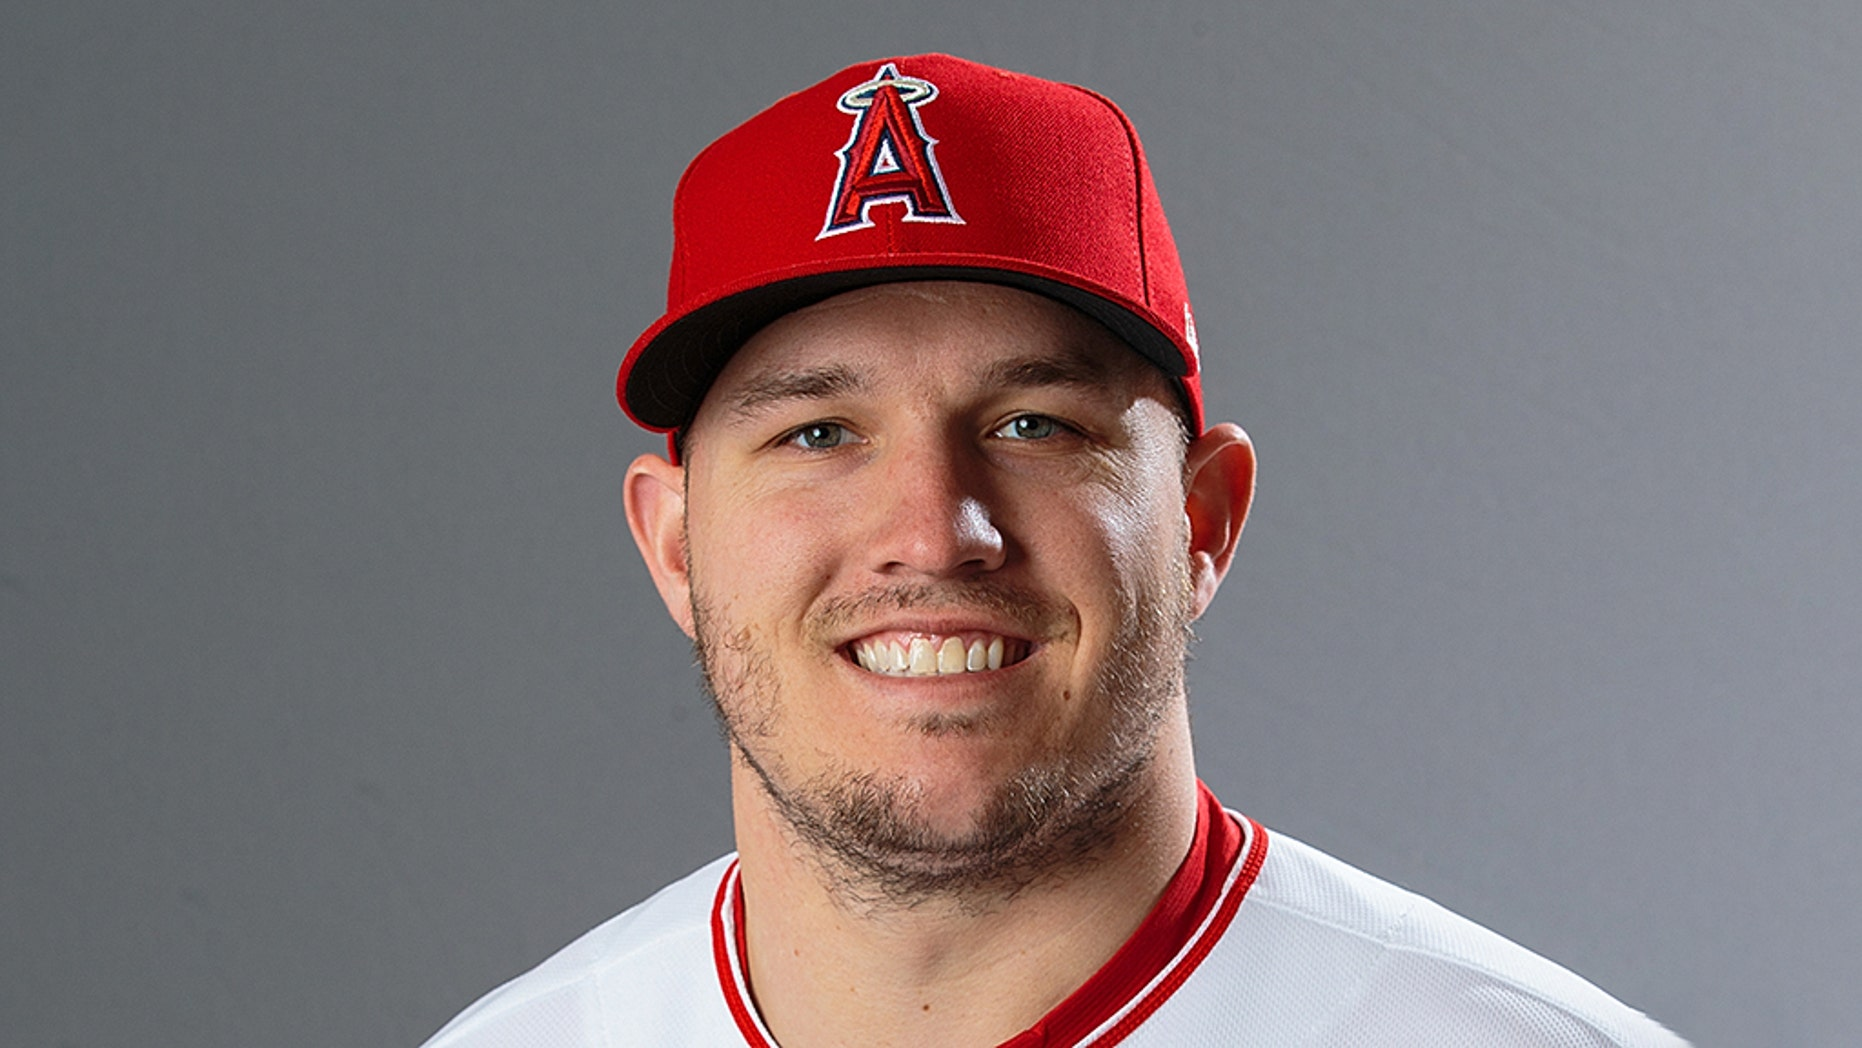 Los Angeles Angels outfielder Mike Trout agreed to a record 12-year contract, the team announced